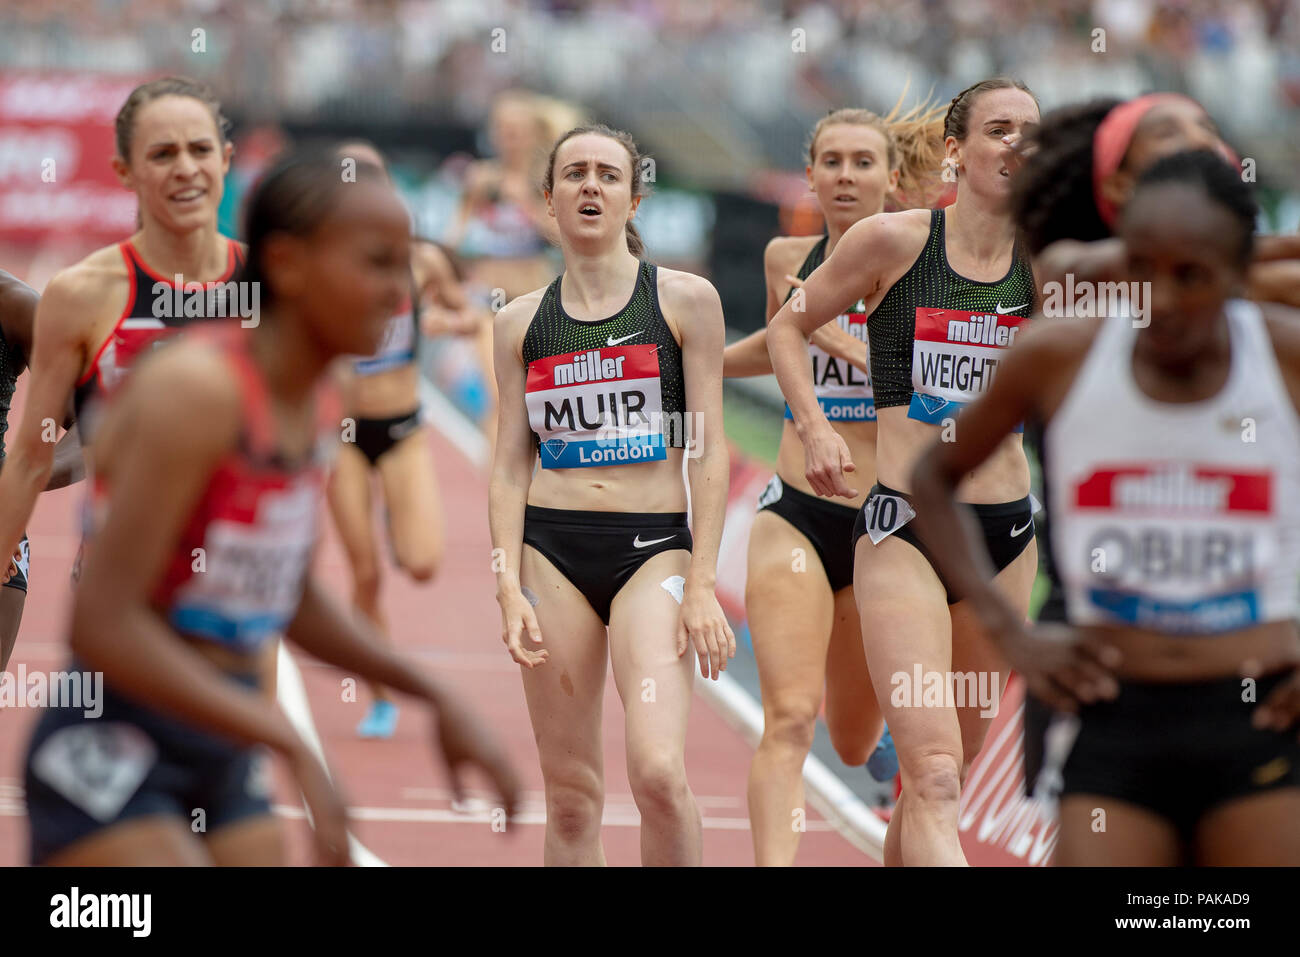 London, UK. 22nd July 2018. Laura Muir (GBR) reacts after a disappointing performance in the Millicent Fawcett Mile at the Muller Anniversary Games at the London Stadium, London, Great Britiain, on 22 July 2018. Credit: Andrew Peat/Alamy Live News - Stock Image